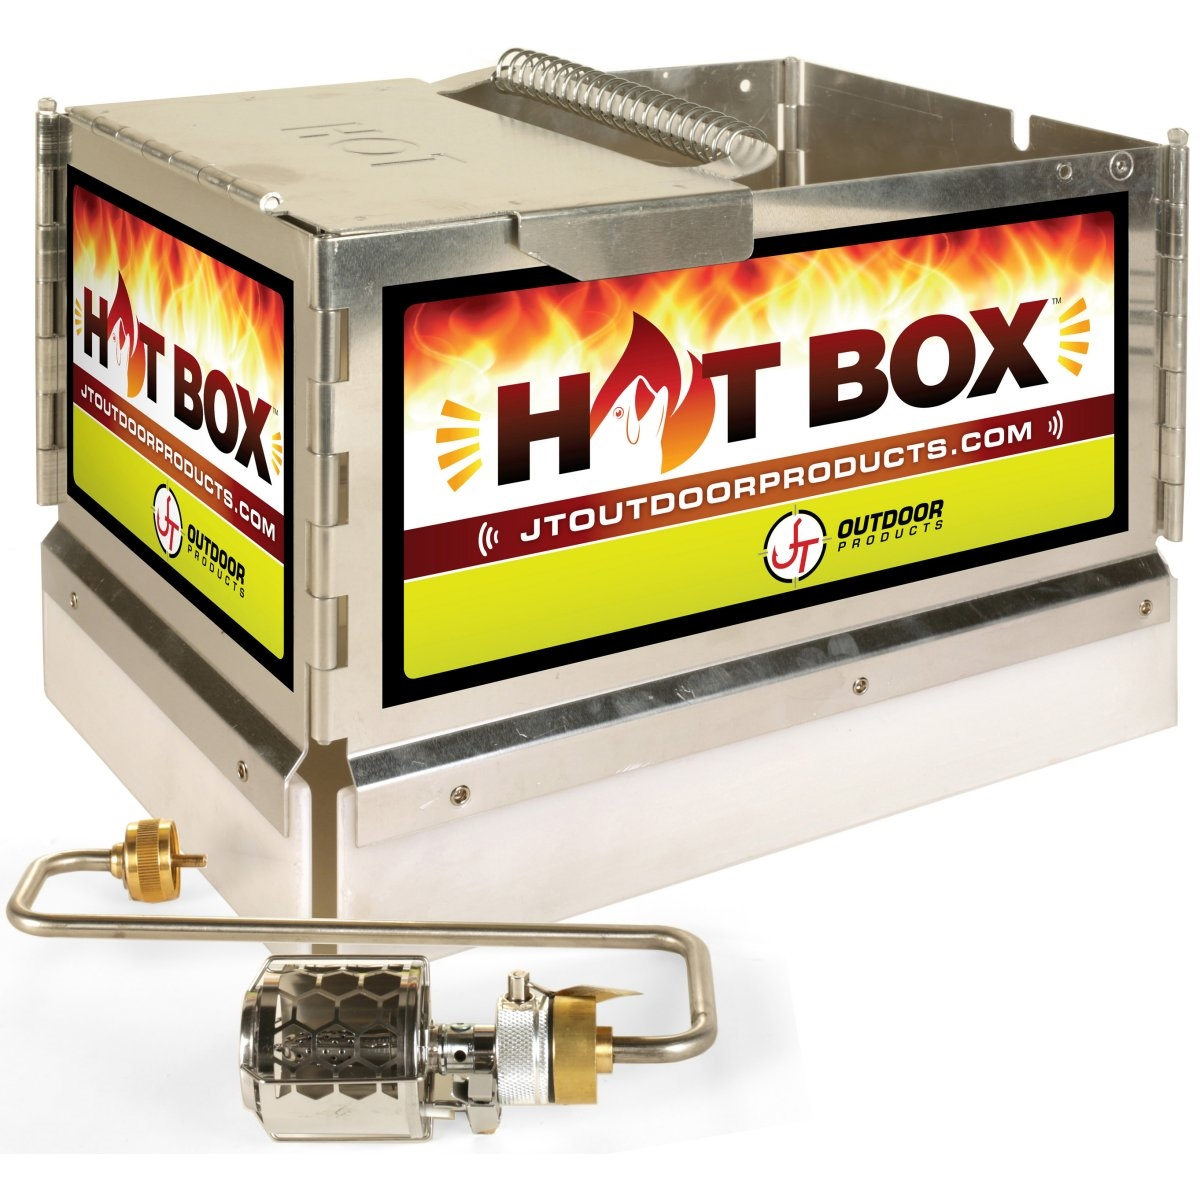 hot box jt outdoor products